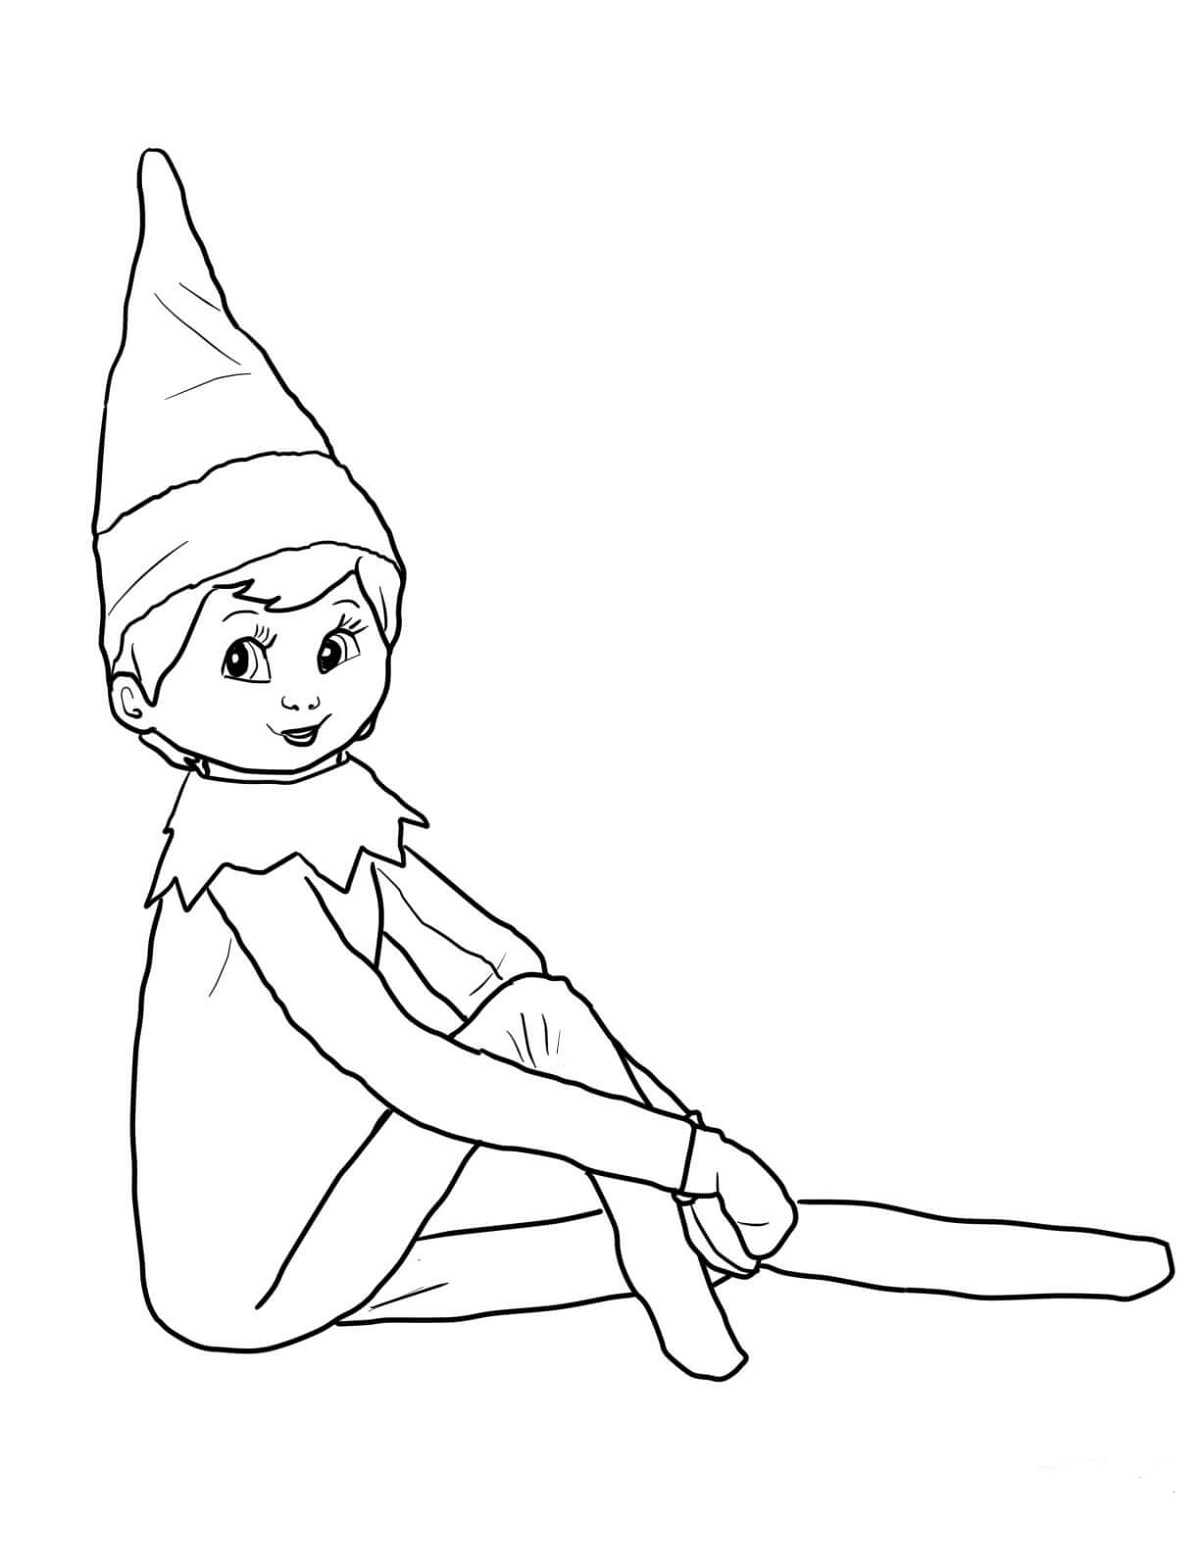 cute elf coloring pages elf clipart coloring page elf coloring page transparent cute elf coloring pages